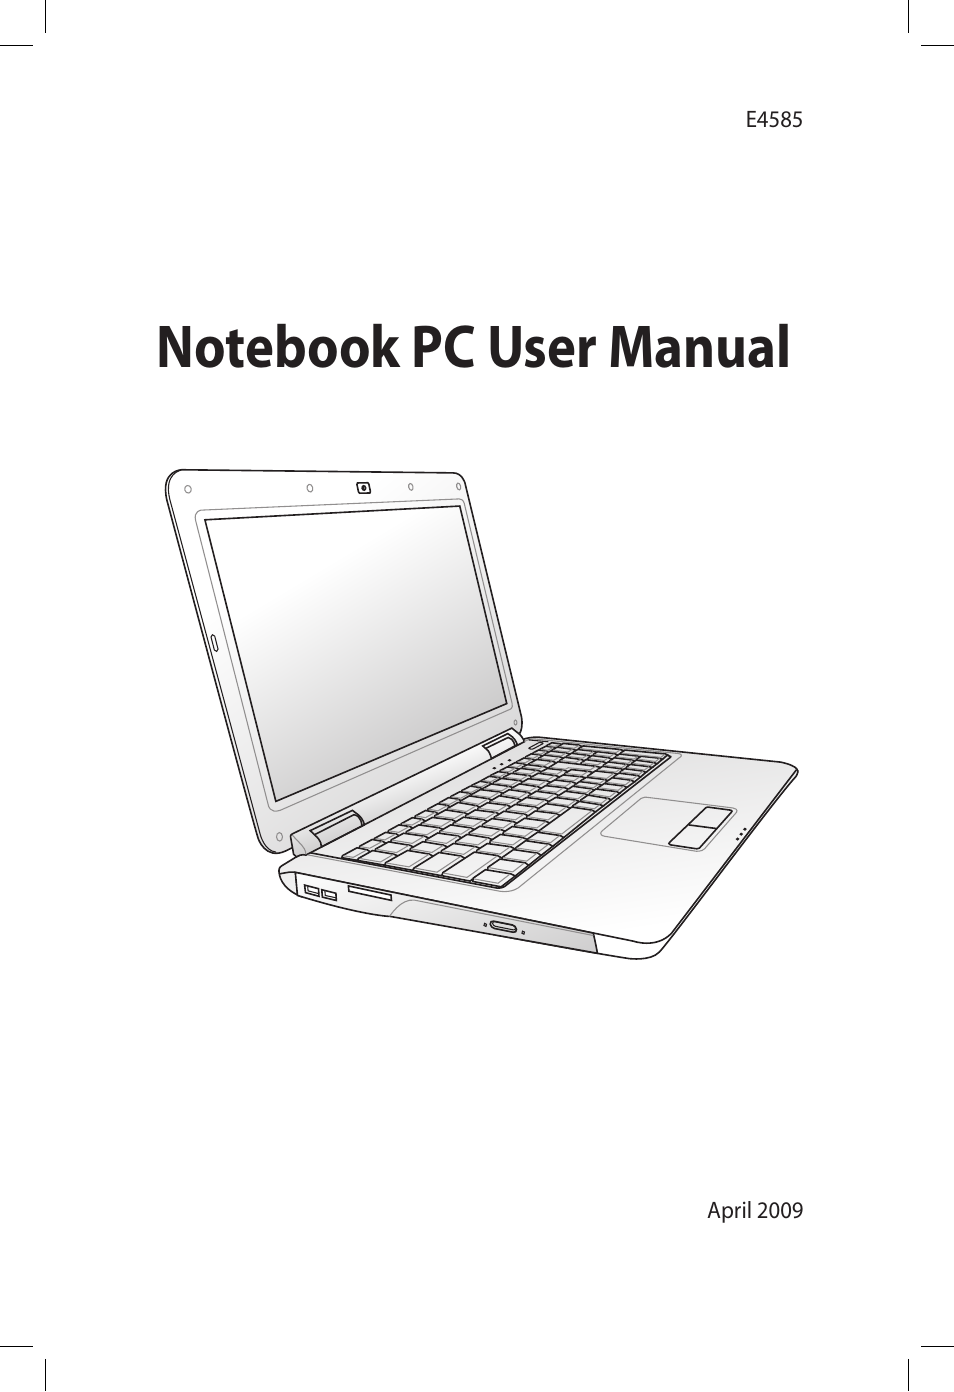 asus x66ic user manual 24 pages also for x5eae x5eac pro66ic rh manualsdir com